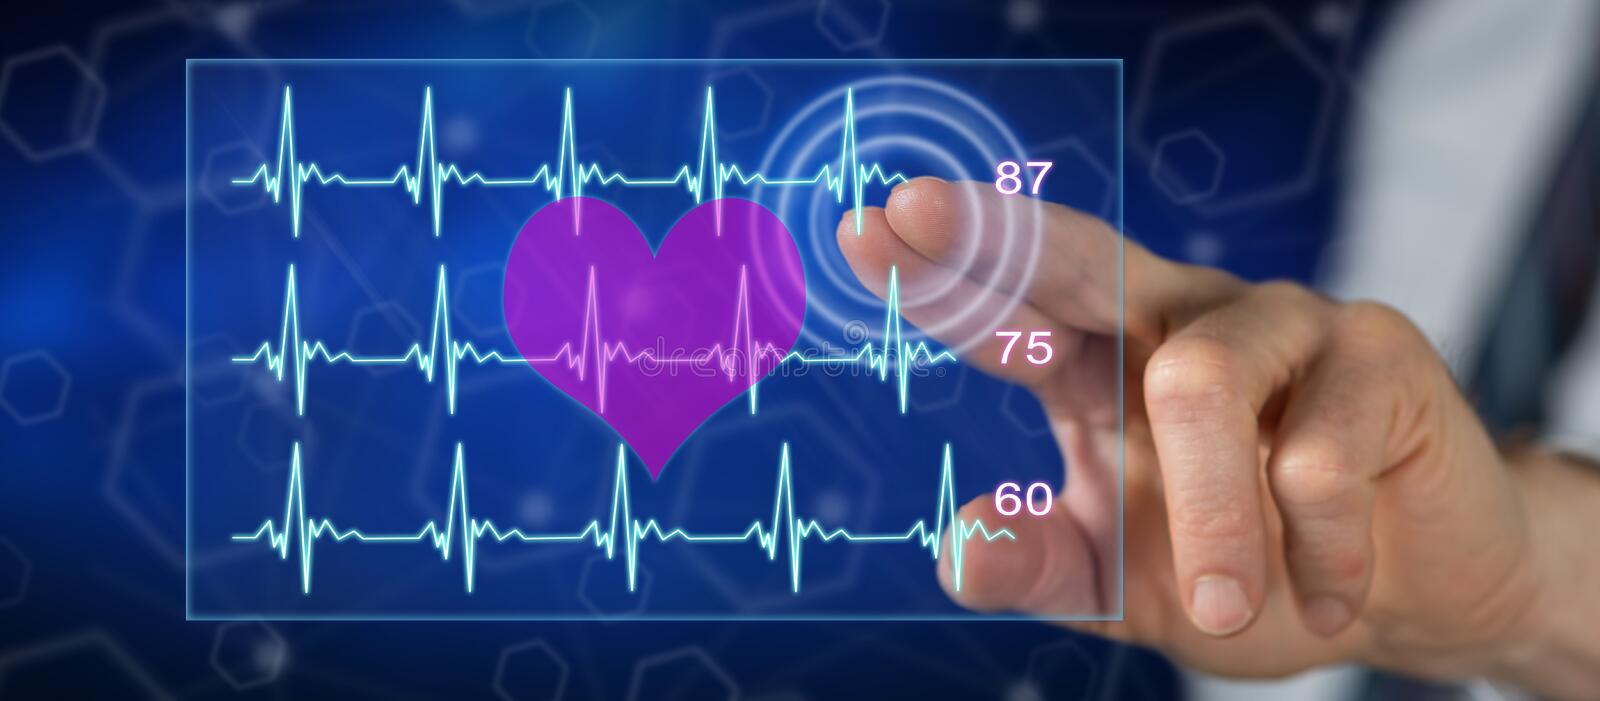 Man touching a heart beats graph concept royalty free illustration